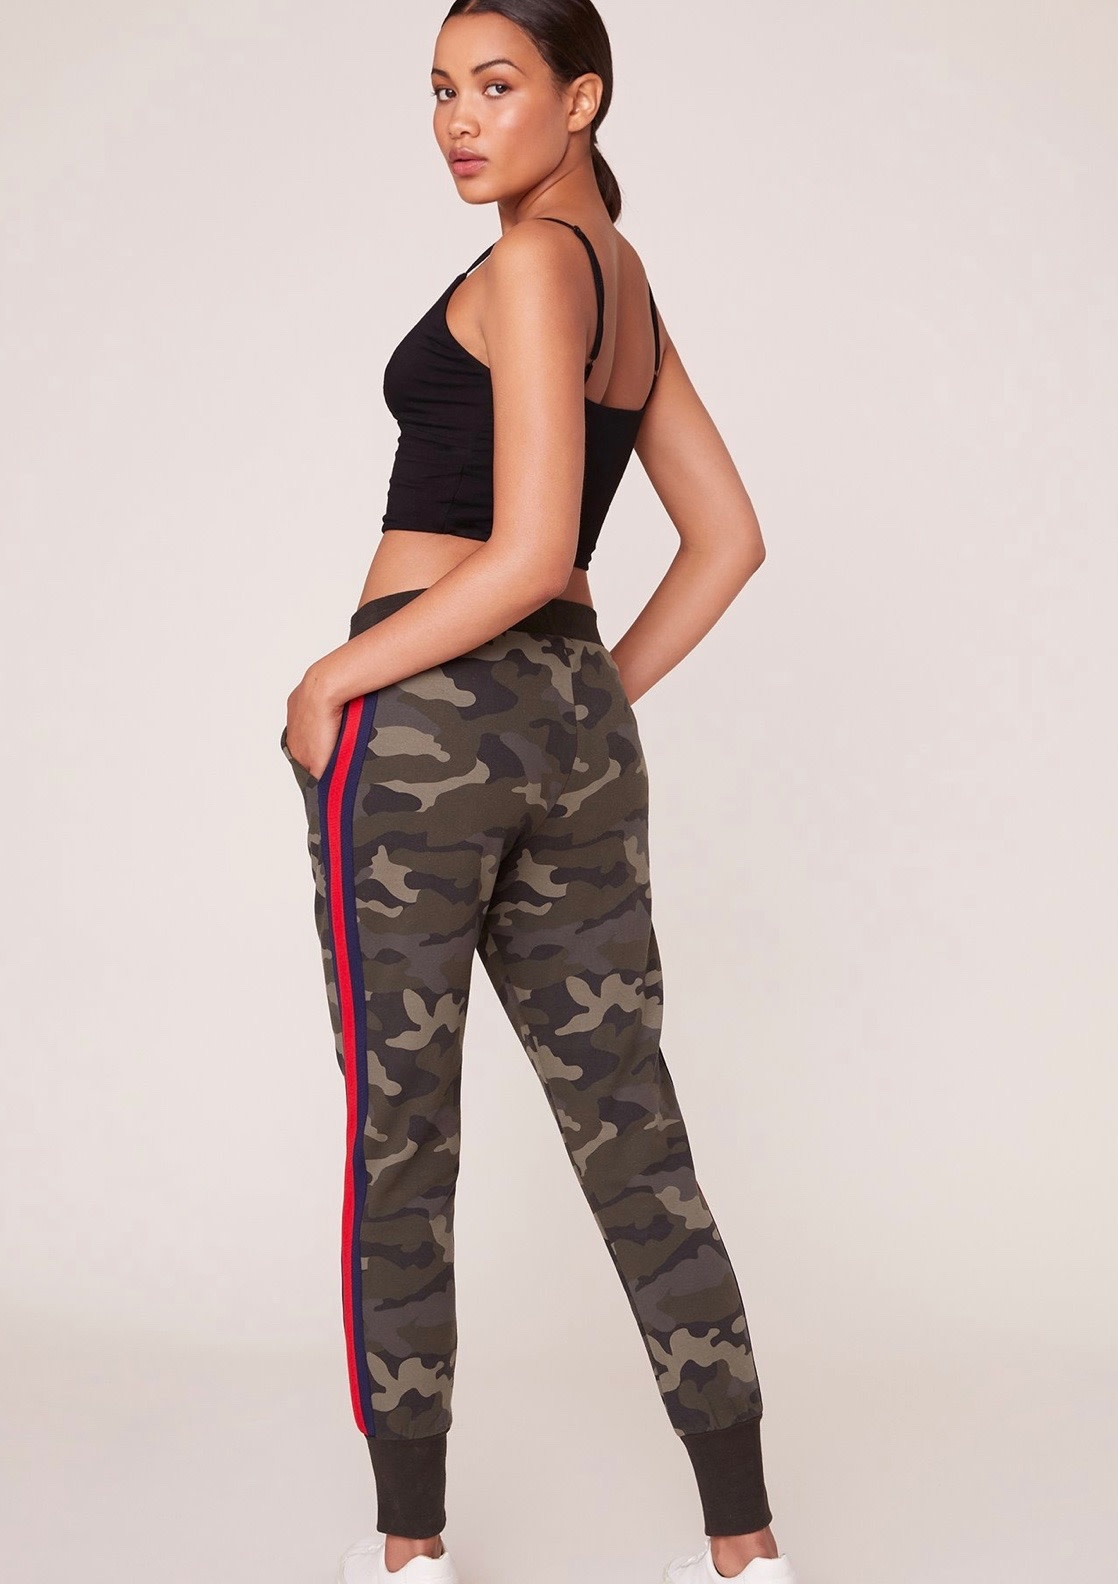 Camouflage Fleece Sweatpants